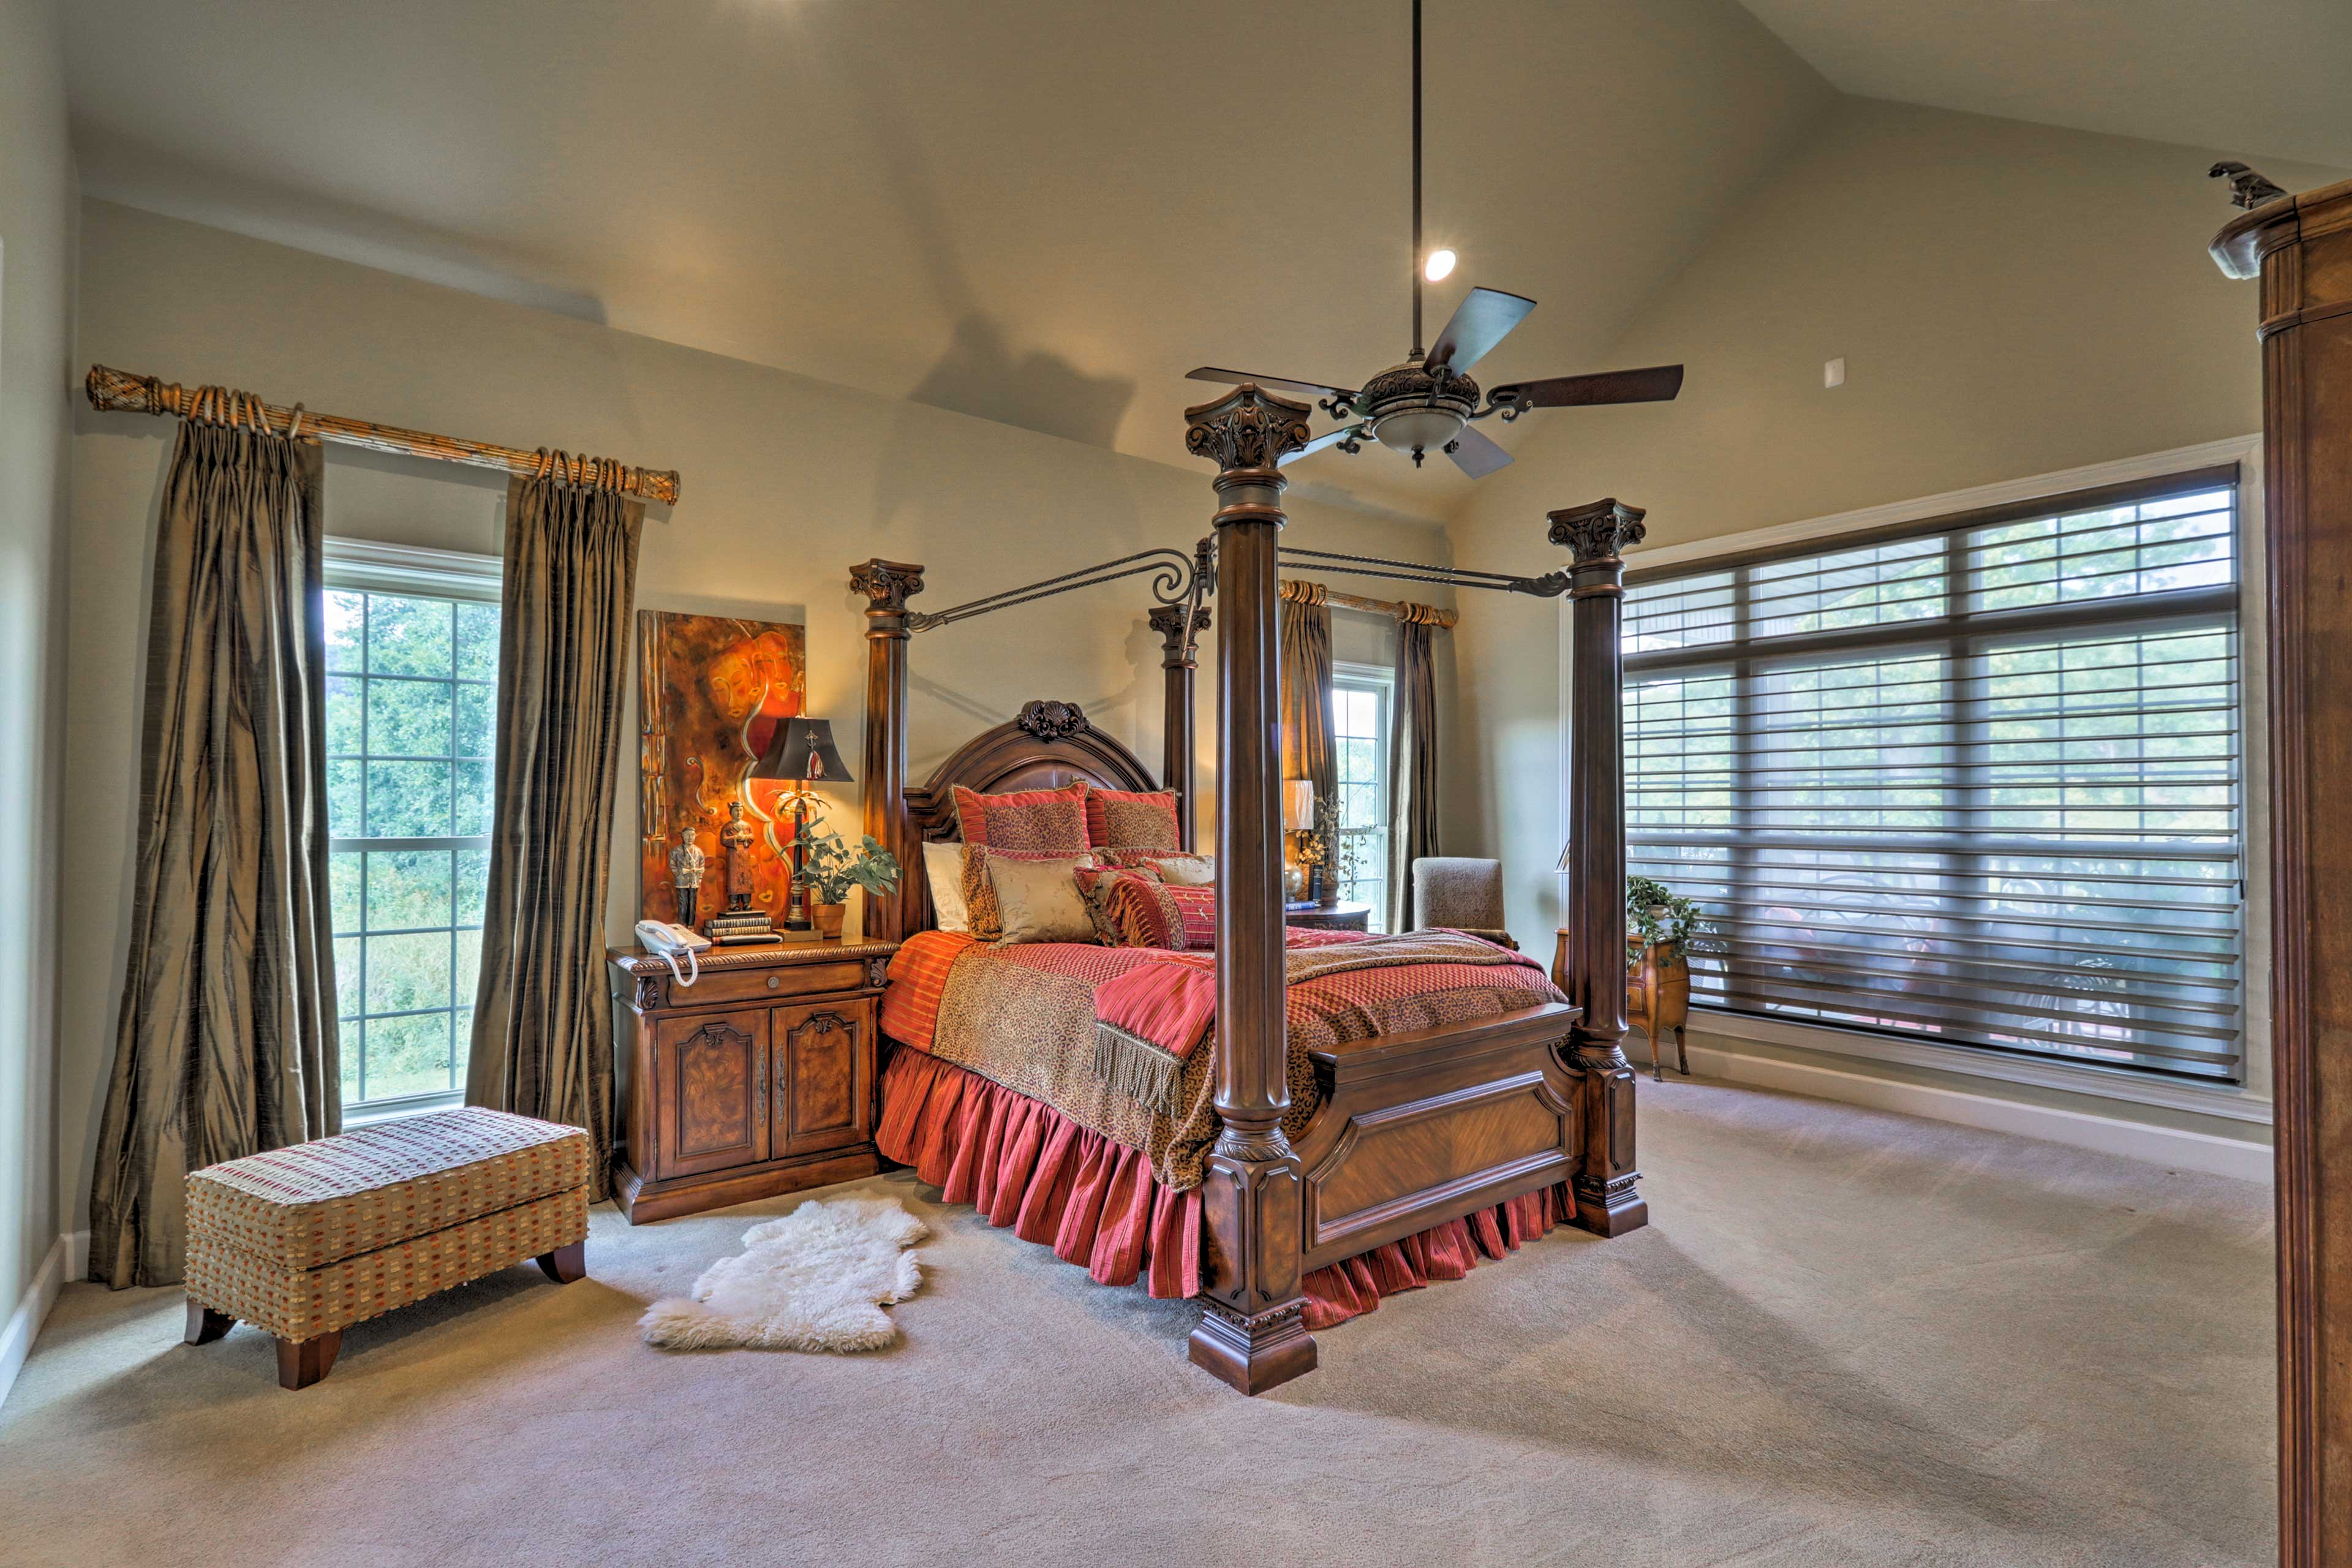 Lay back on the comfy queen bed in the spacious master bedroom to rest.